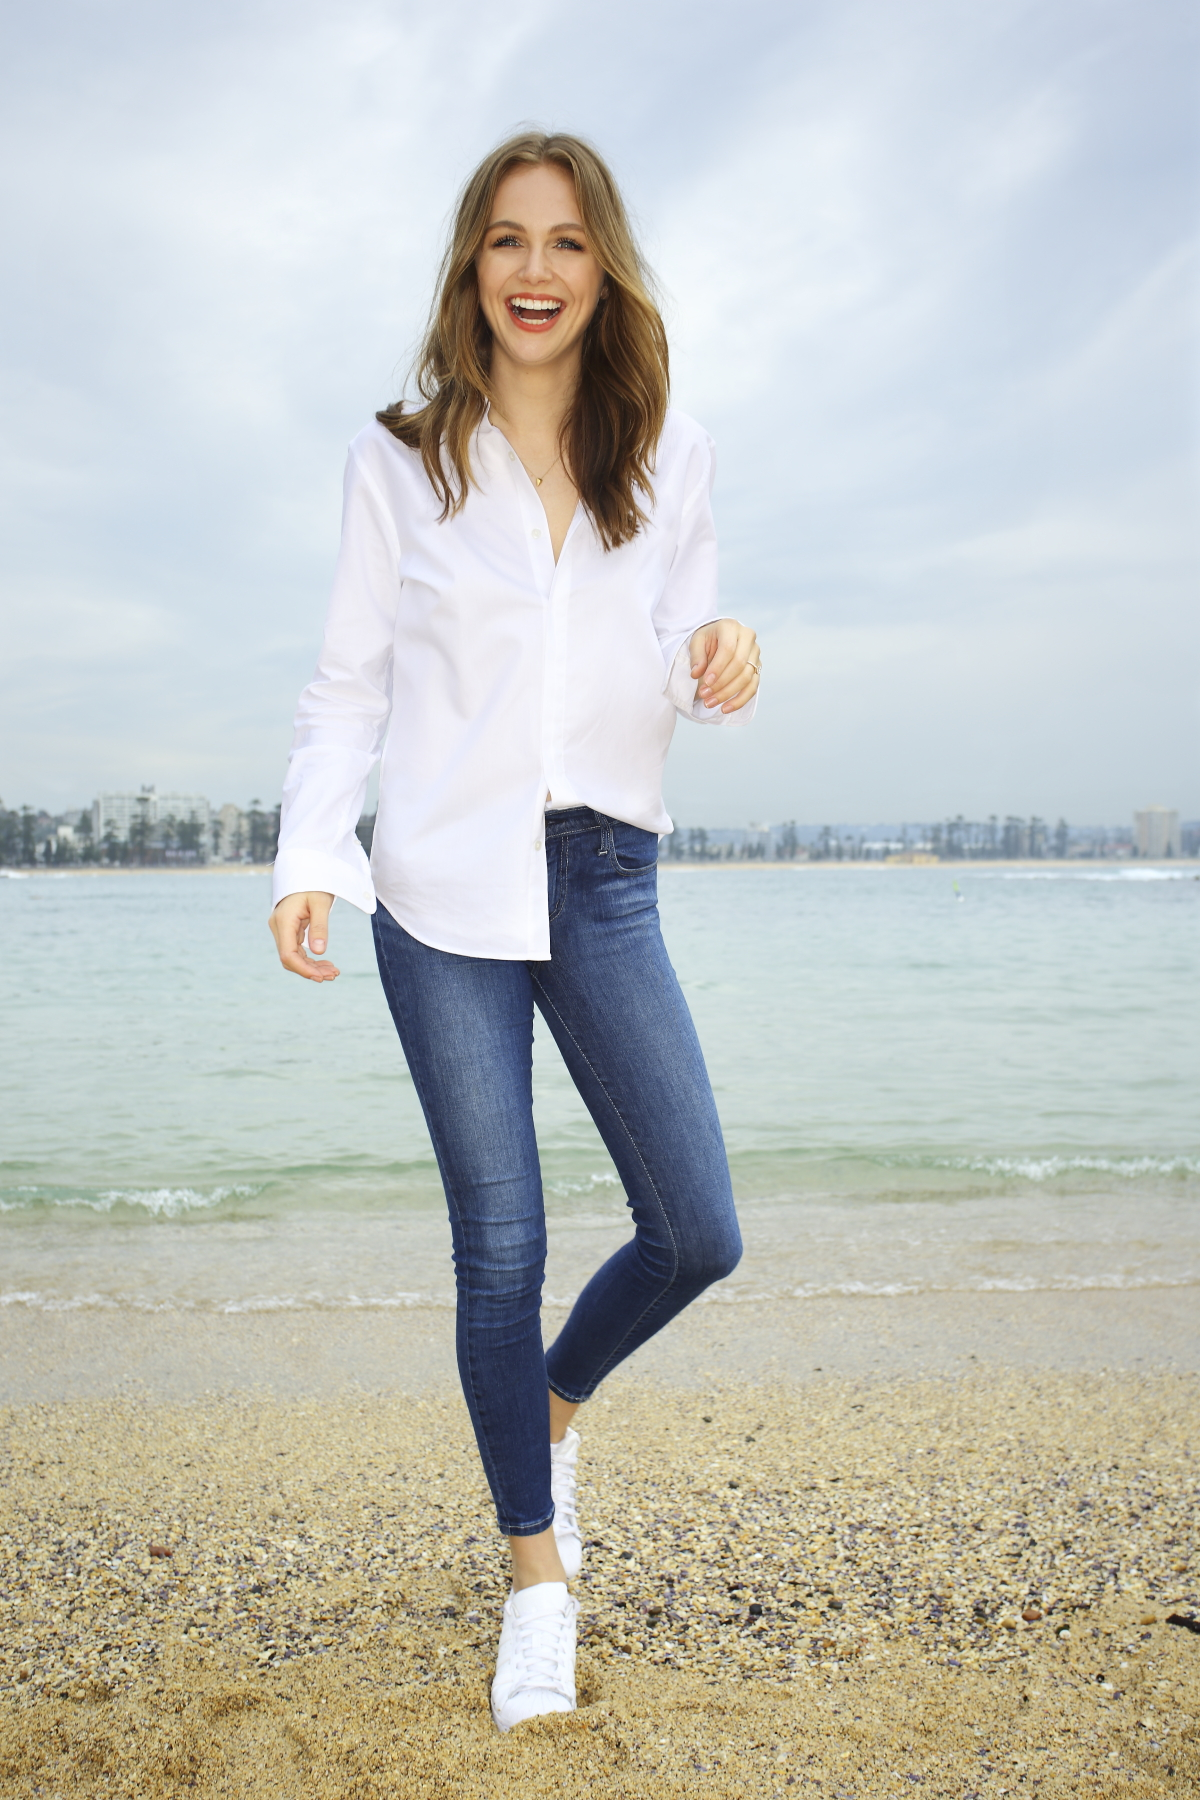 White Shirt Campaign with Ksenija Lukich